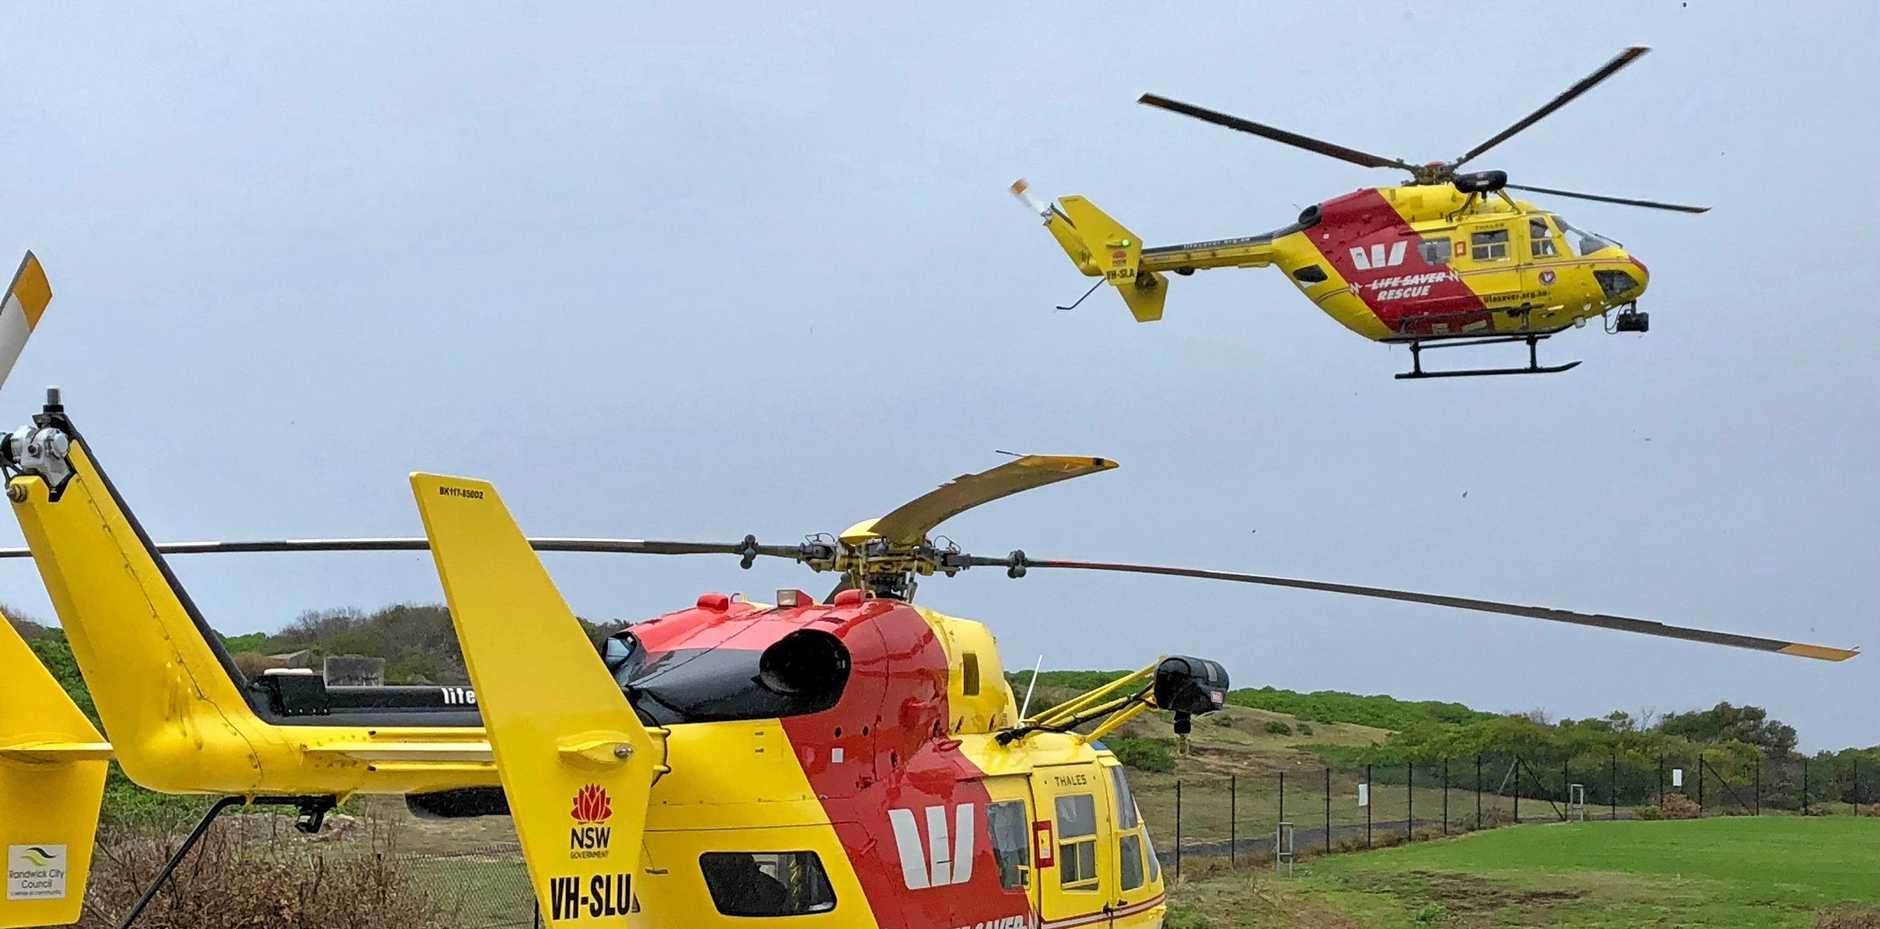 They Sydney and southern NSW Westpac Rescue helicopters have flown 60 missions in northern NSW in 14-months prompting calls for a new Coffs Harbour-based helicopter.